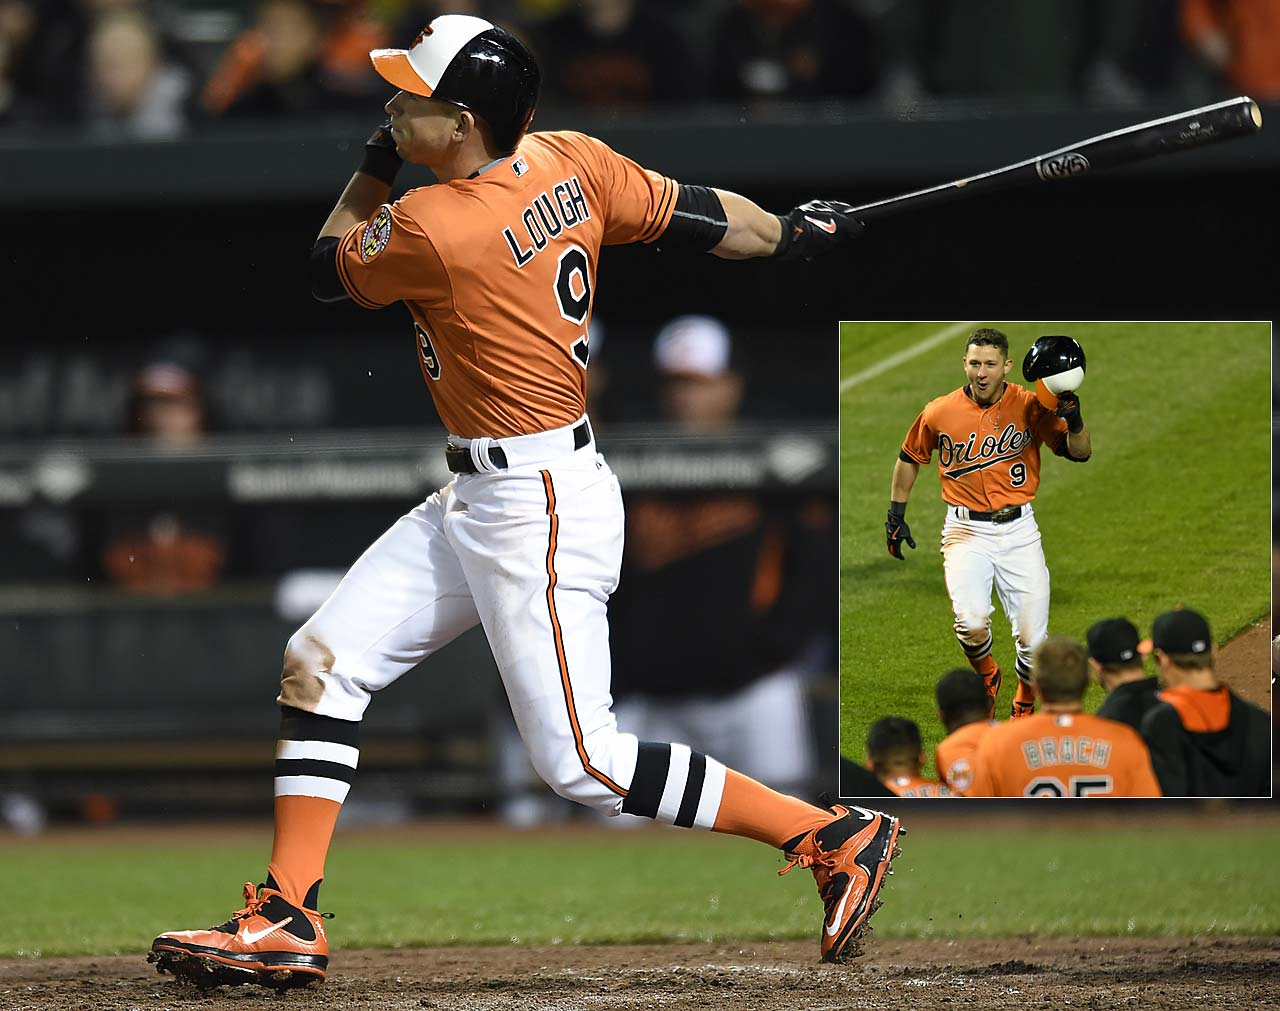 David Lough of the Baltimore Orioles hit a 10th inning walk-off homer against Boston on April 25 that gave the Orioles a 5-4 victory.